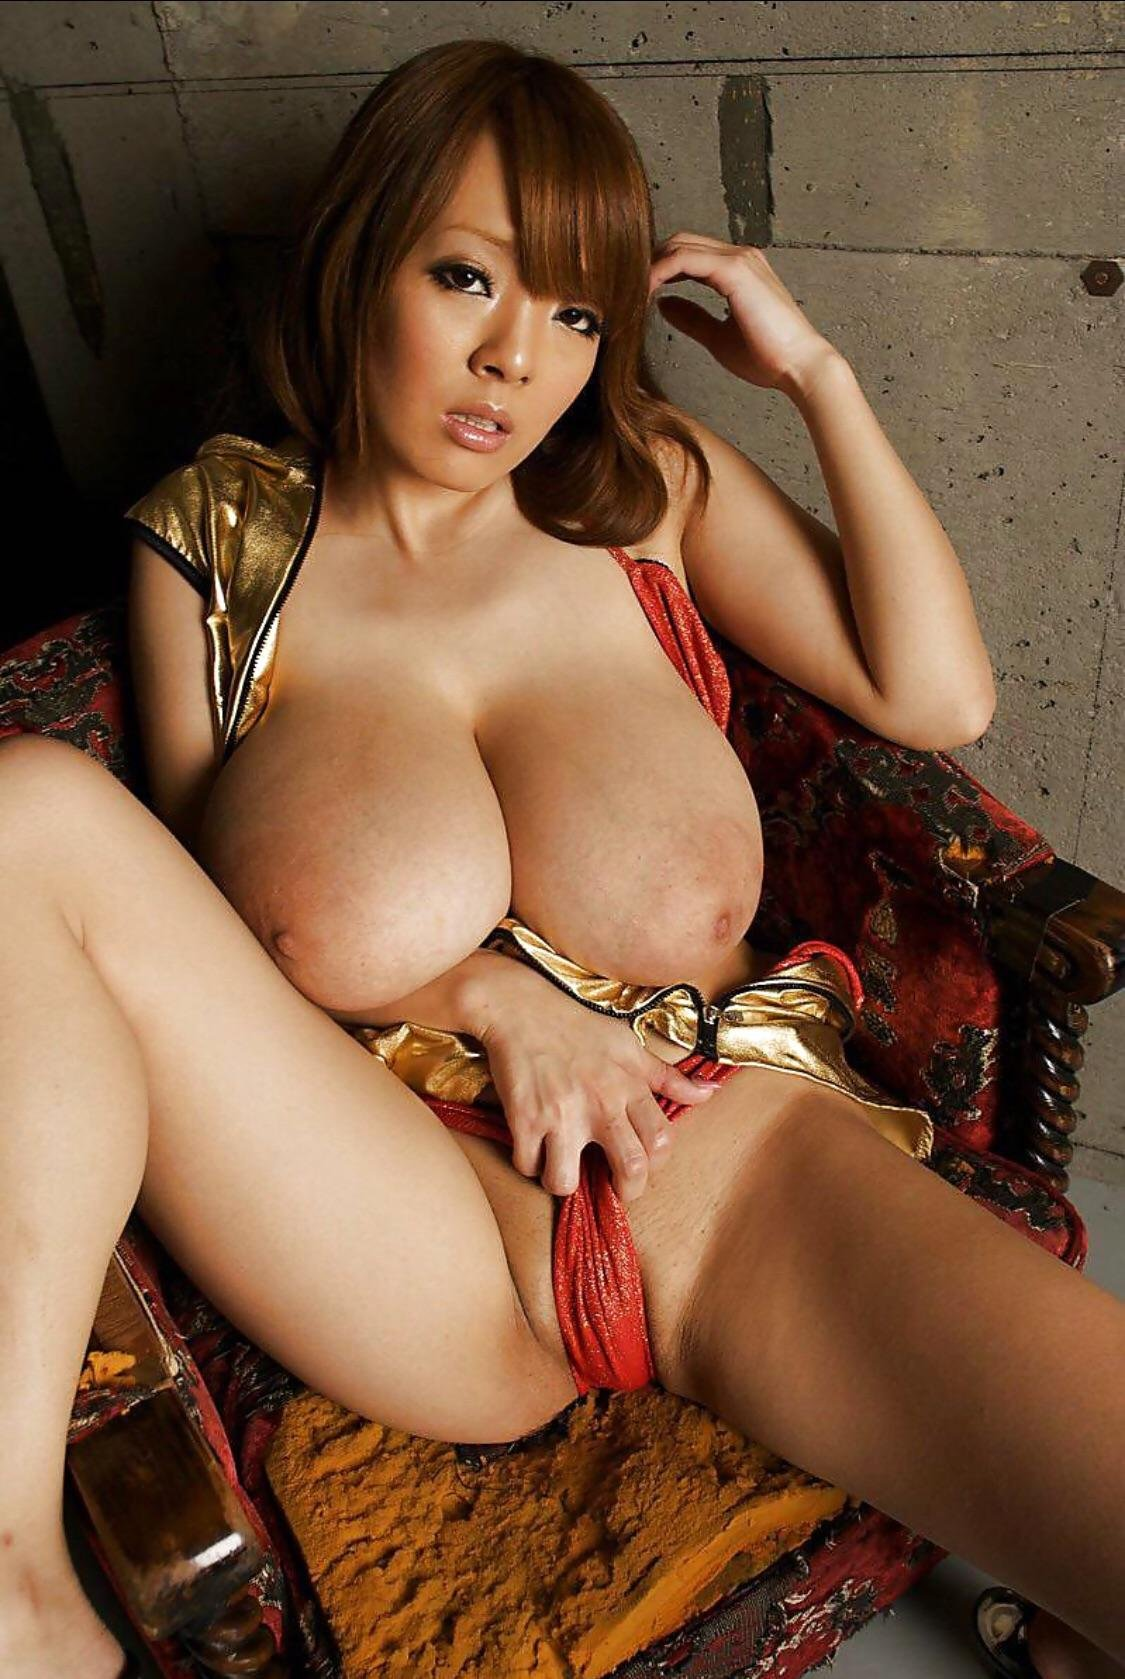 porn-photos-busty-asian-bisexual-dating-free-membership-virginia-west